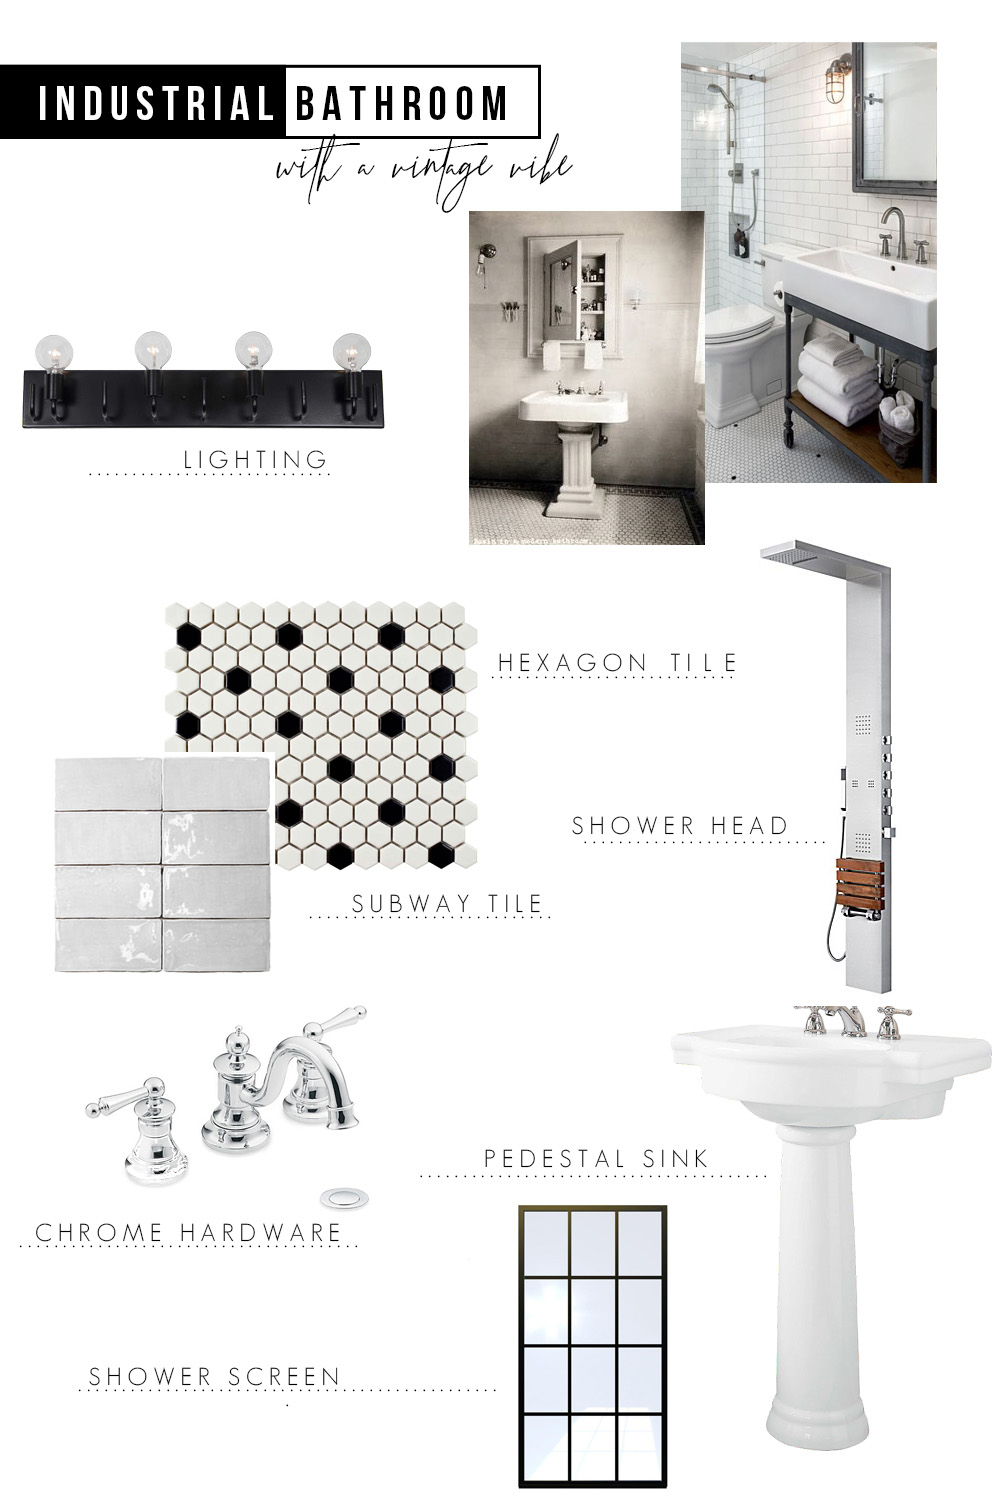 Industrial Bathroom Design Plans + Vintage Vibe - Cherished Bliss